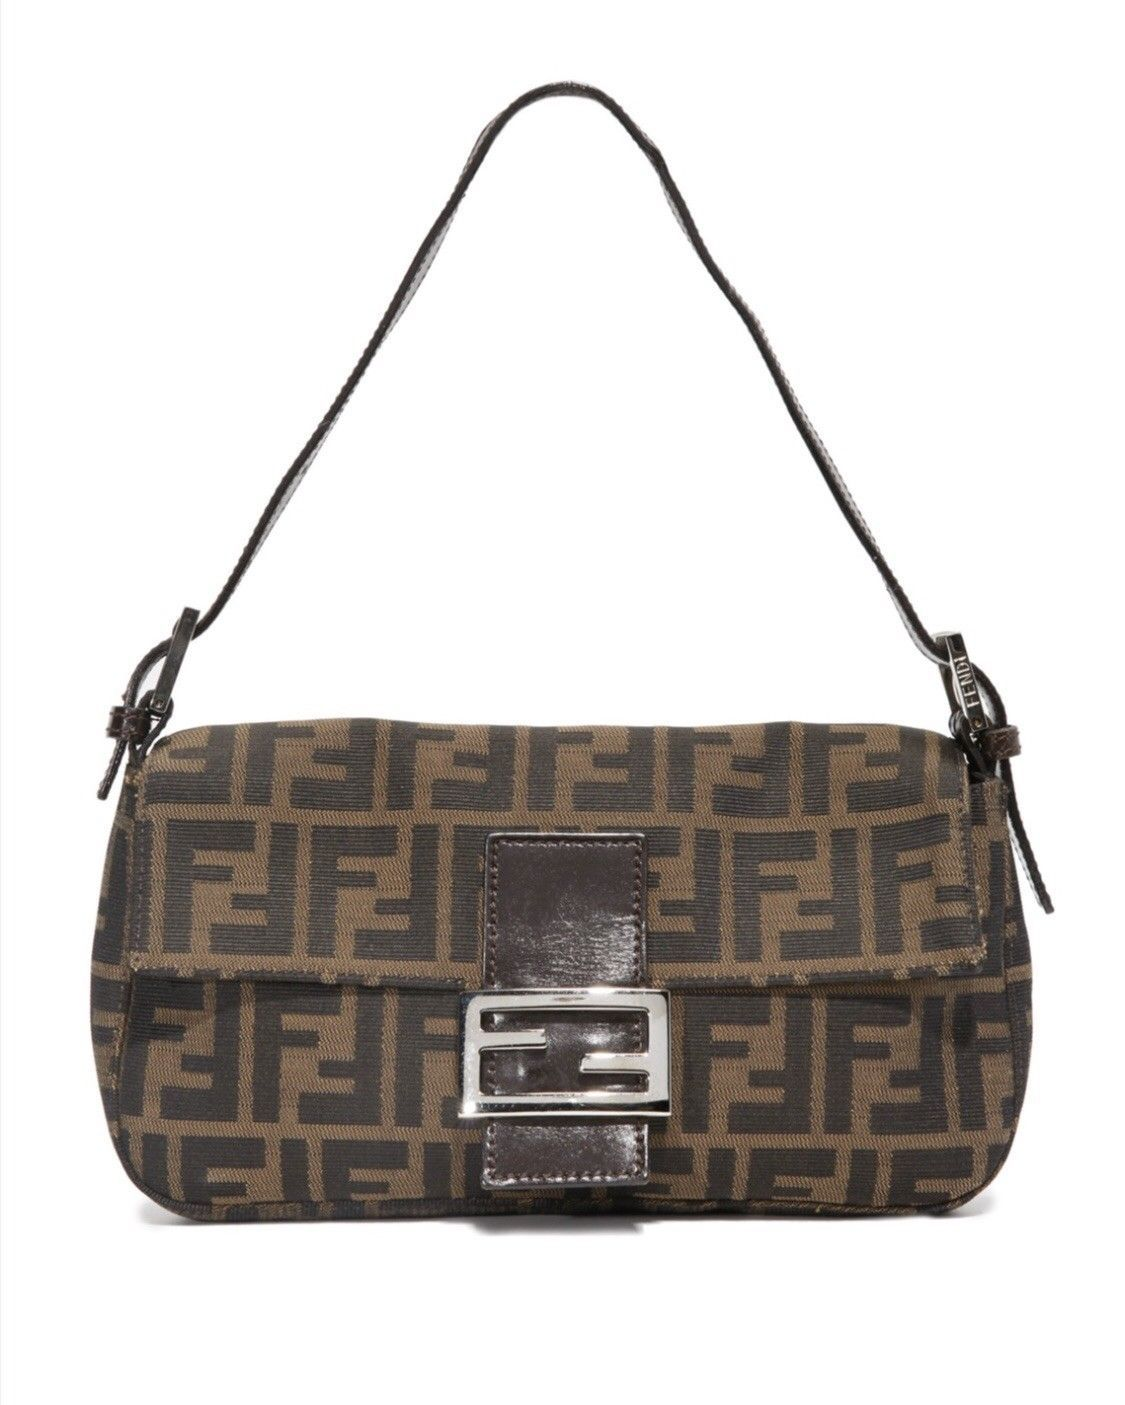 bf4715cd354 Details about authentic vintage fendi handbag in 2019